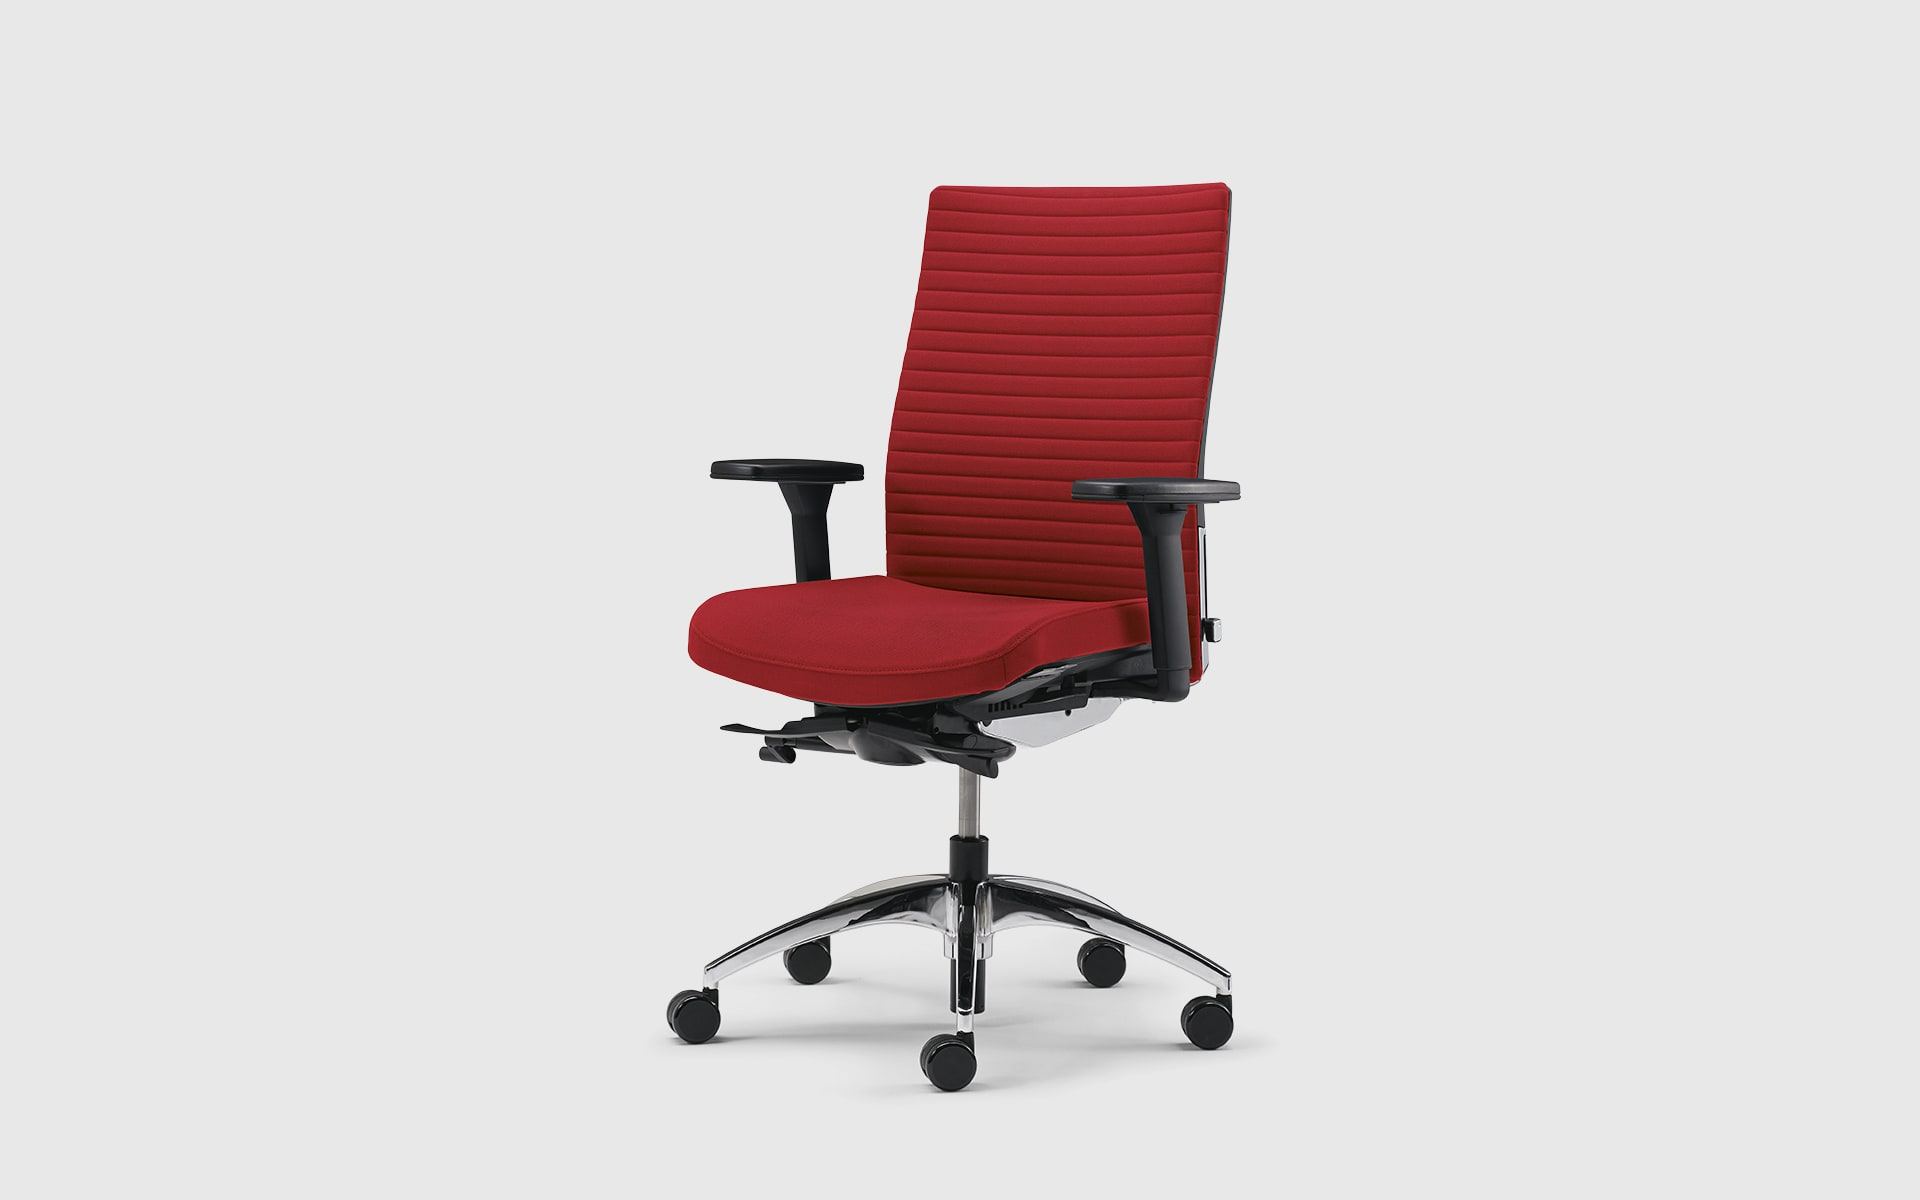 K+N Okay II revolving chair by ITO Design with red upholstery